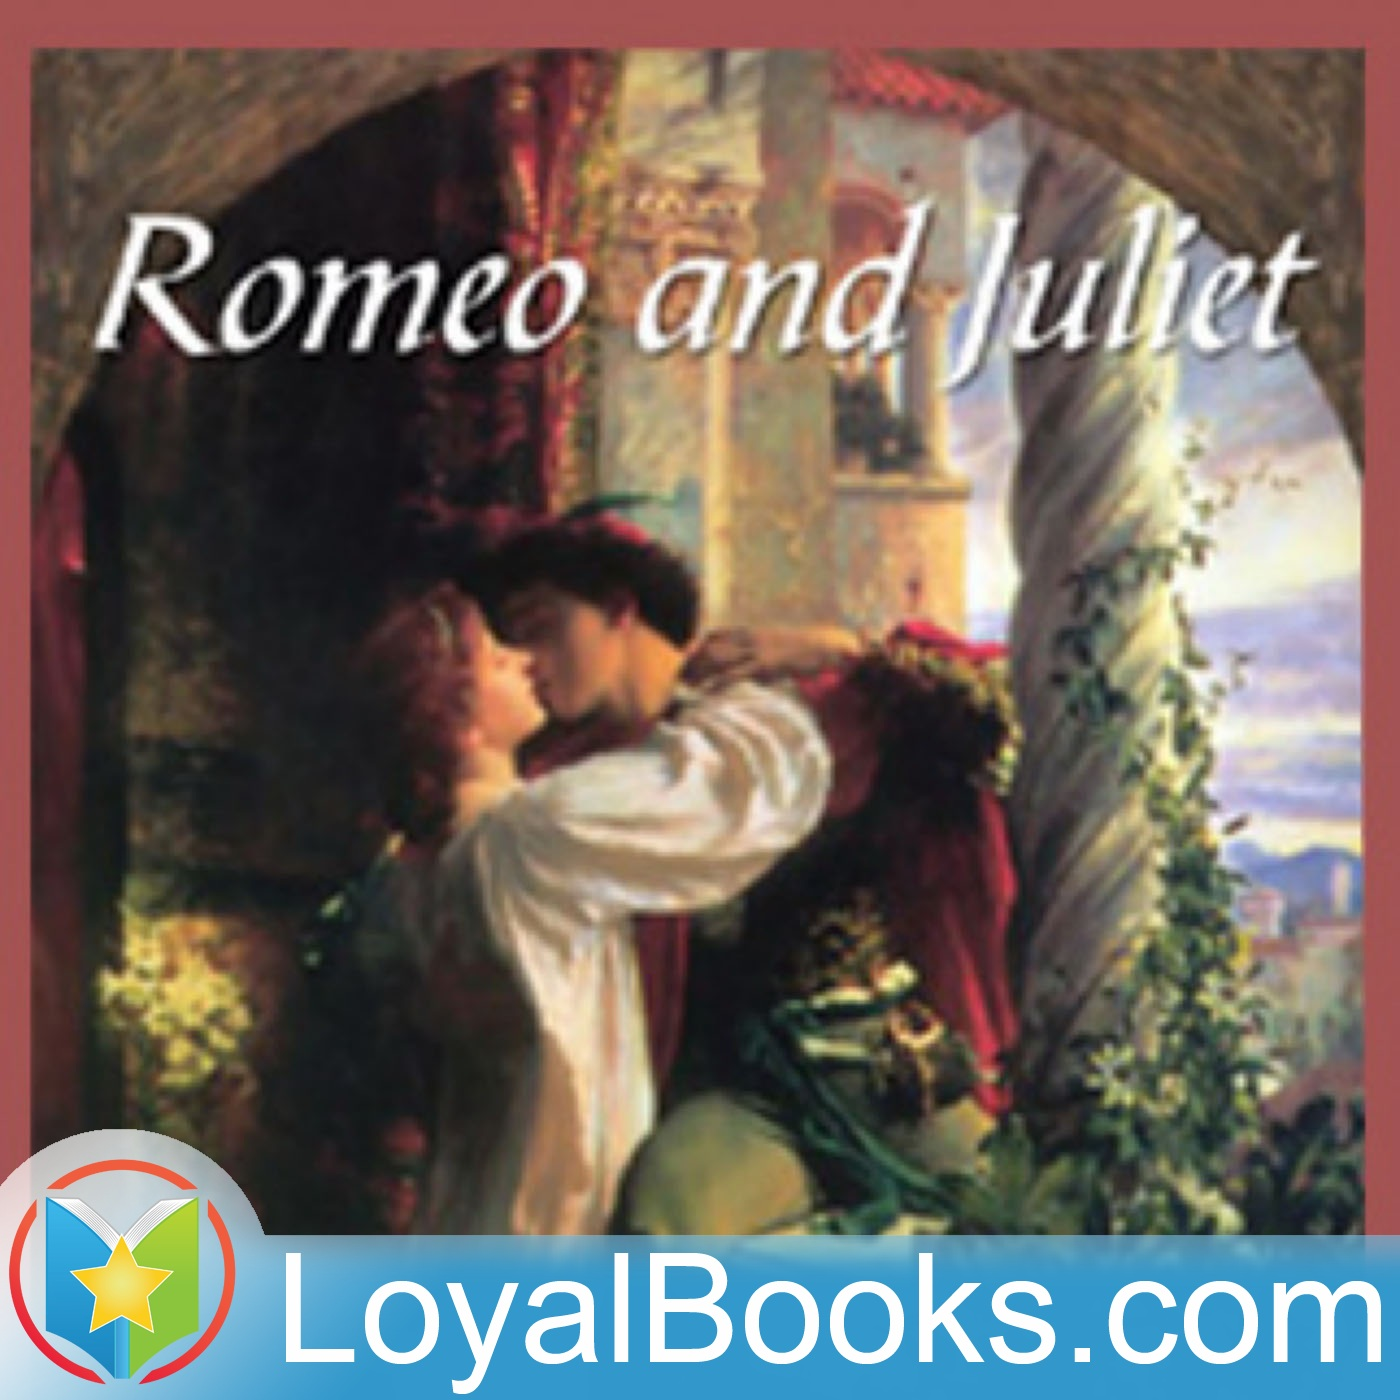 a discussion of the star crossed lovers in romeo and juliet by william shakespeare Free essay: shakespeare's act 3 scene 5 of romeo and juliet as dramatically effective romeo and juliet is a story of two star-crossed lovers who.